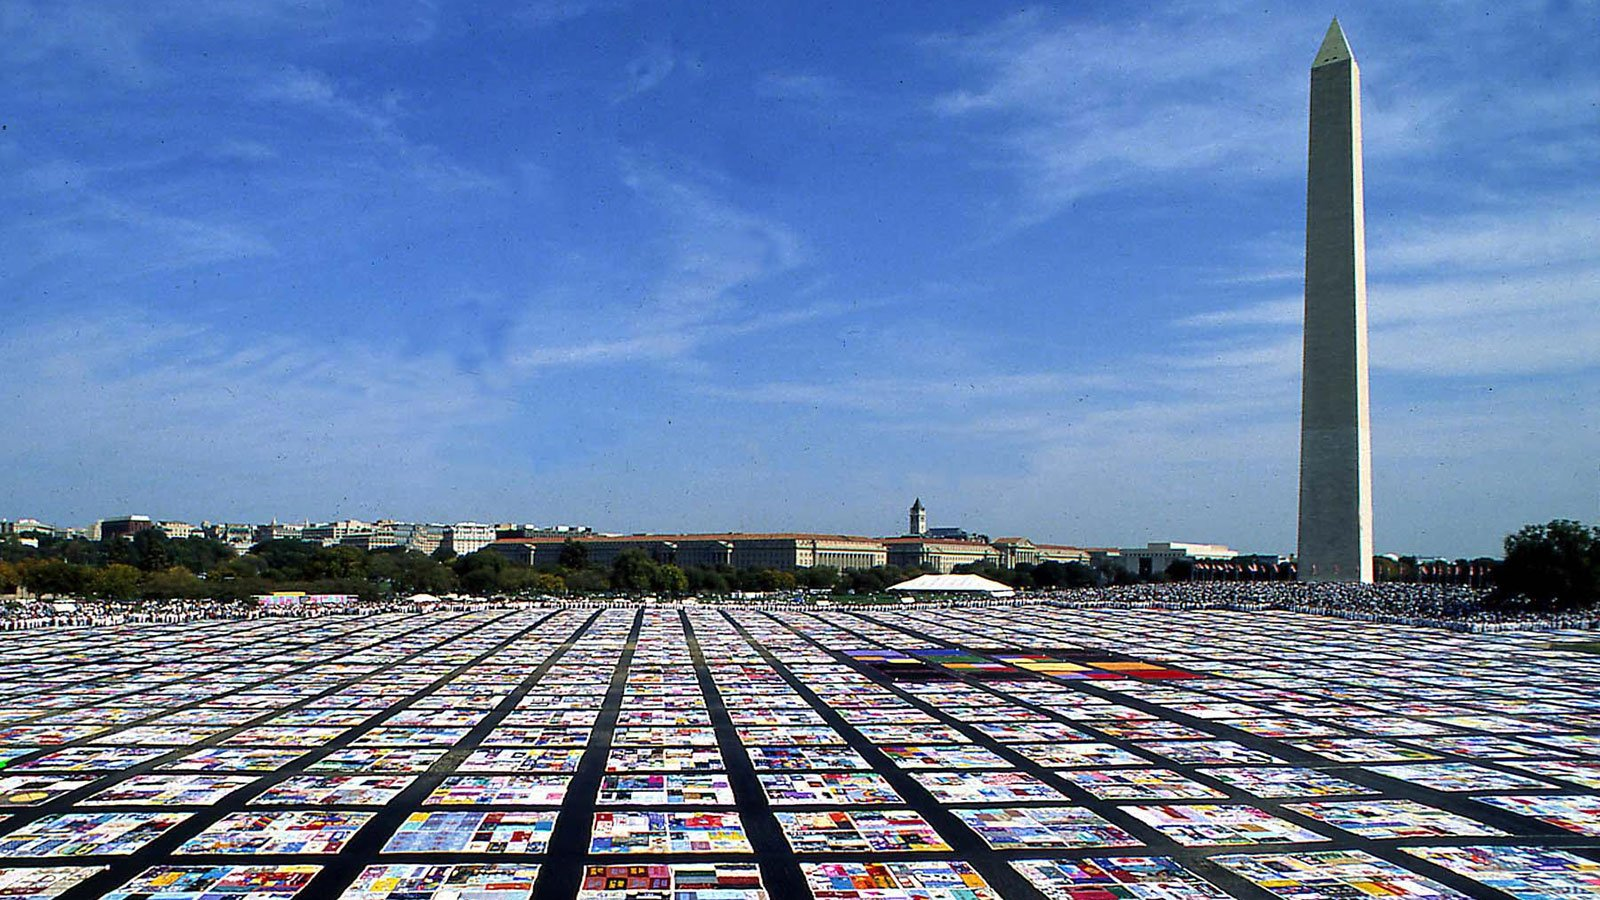 The AIDS Memorial Quilt on display on the National Mall in Washington, D.C.